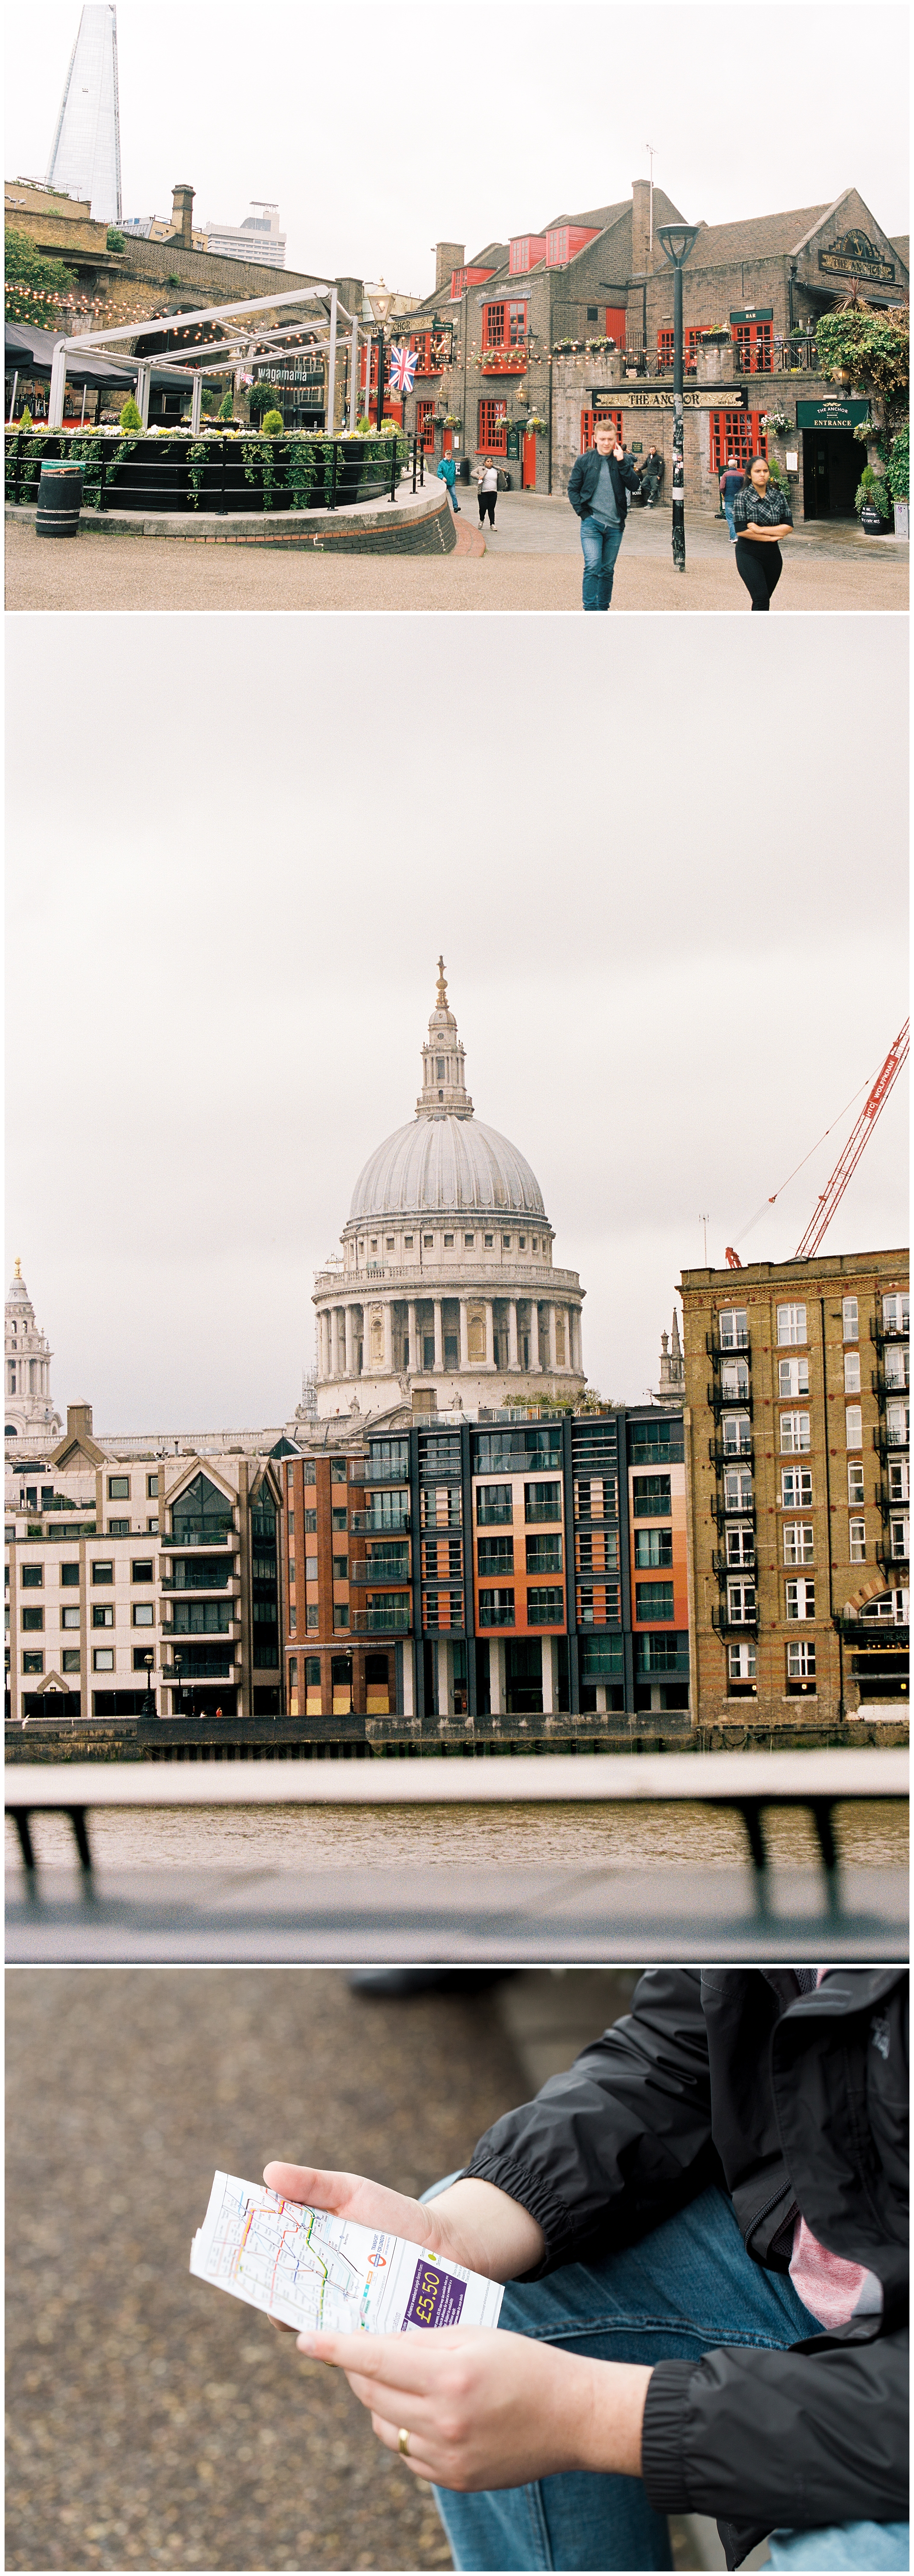 London_Travel_Blog_03